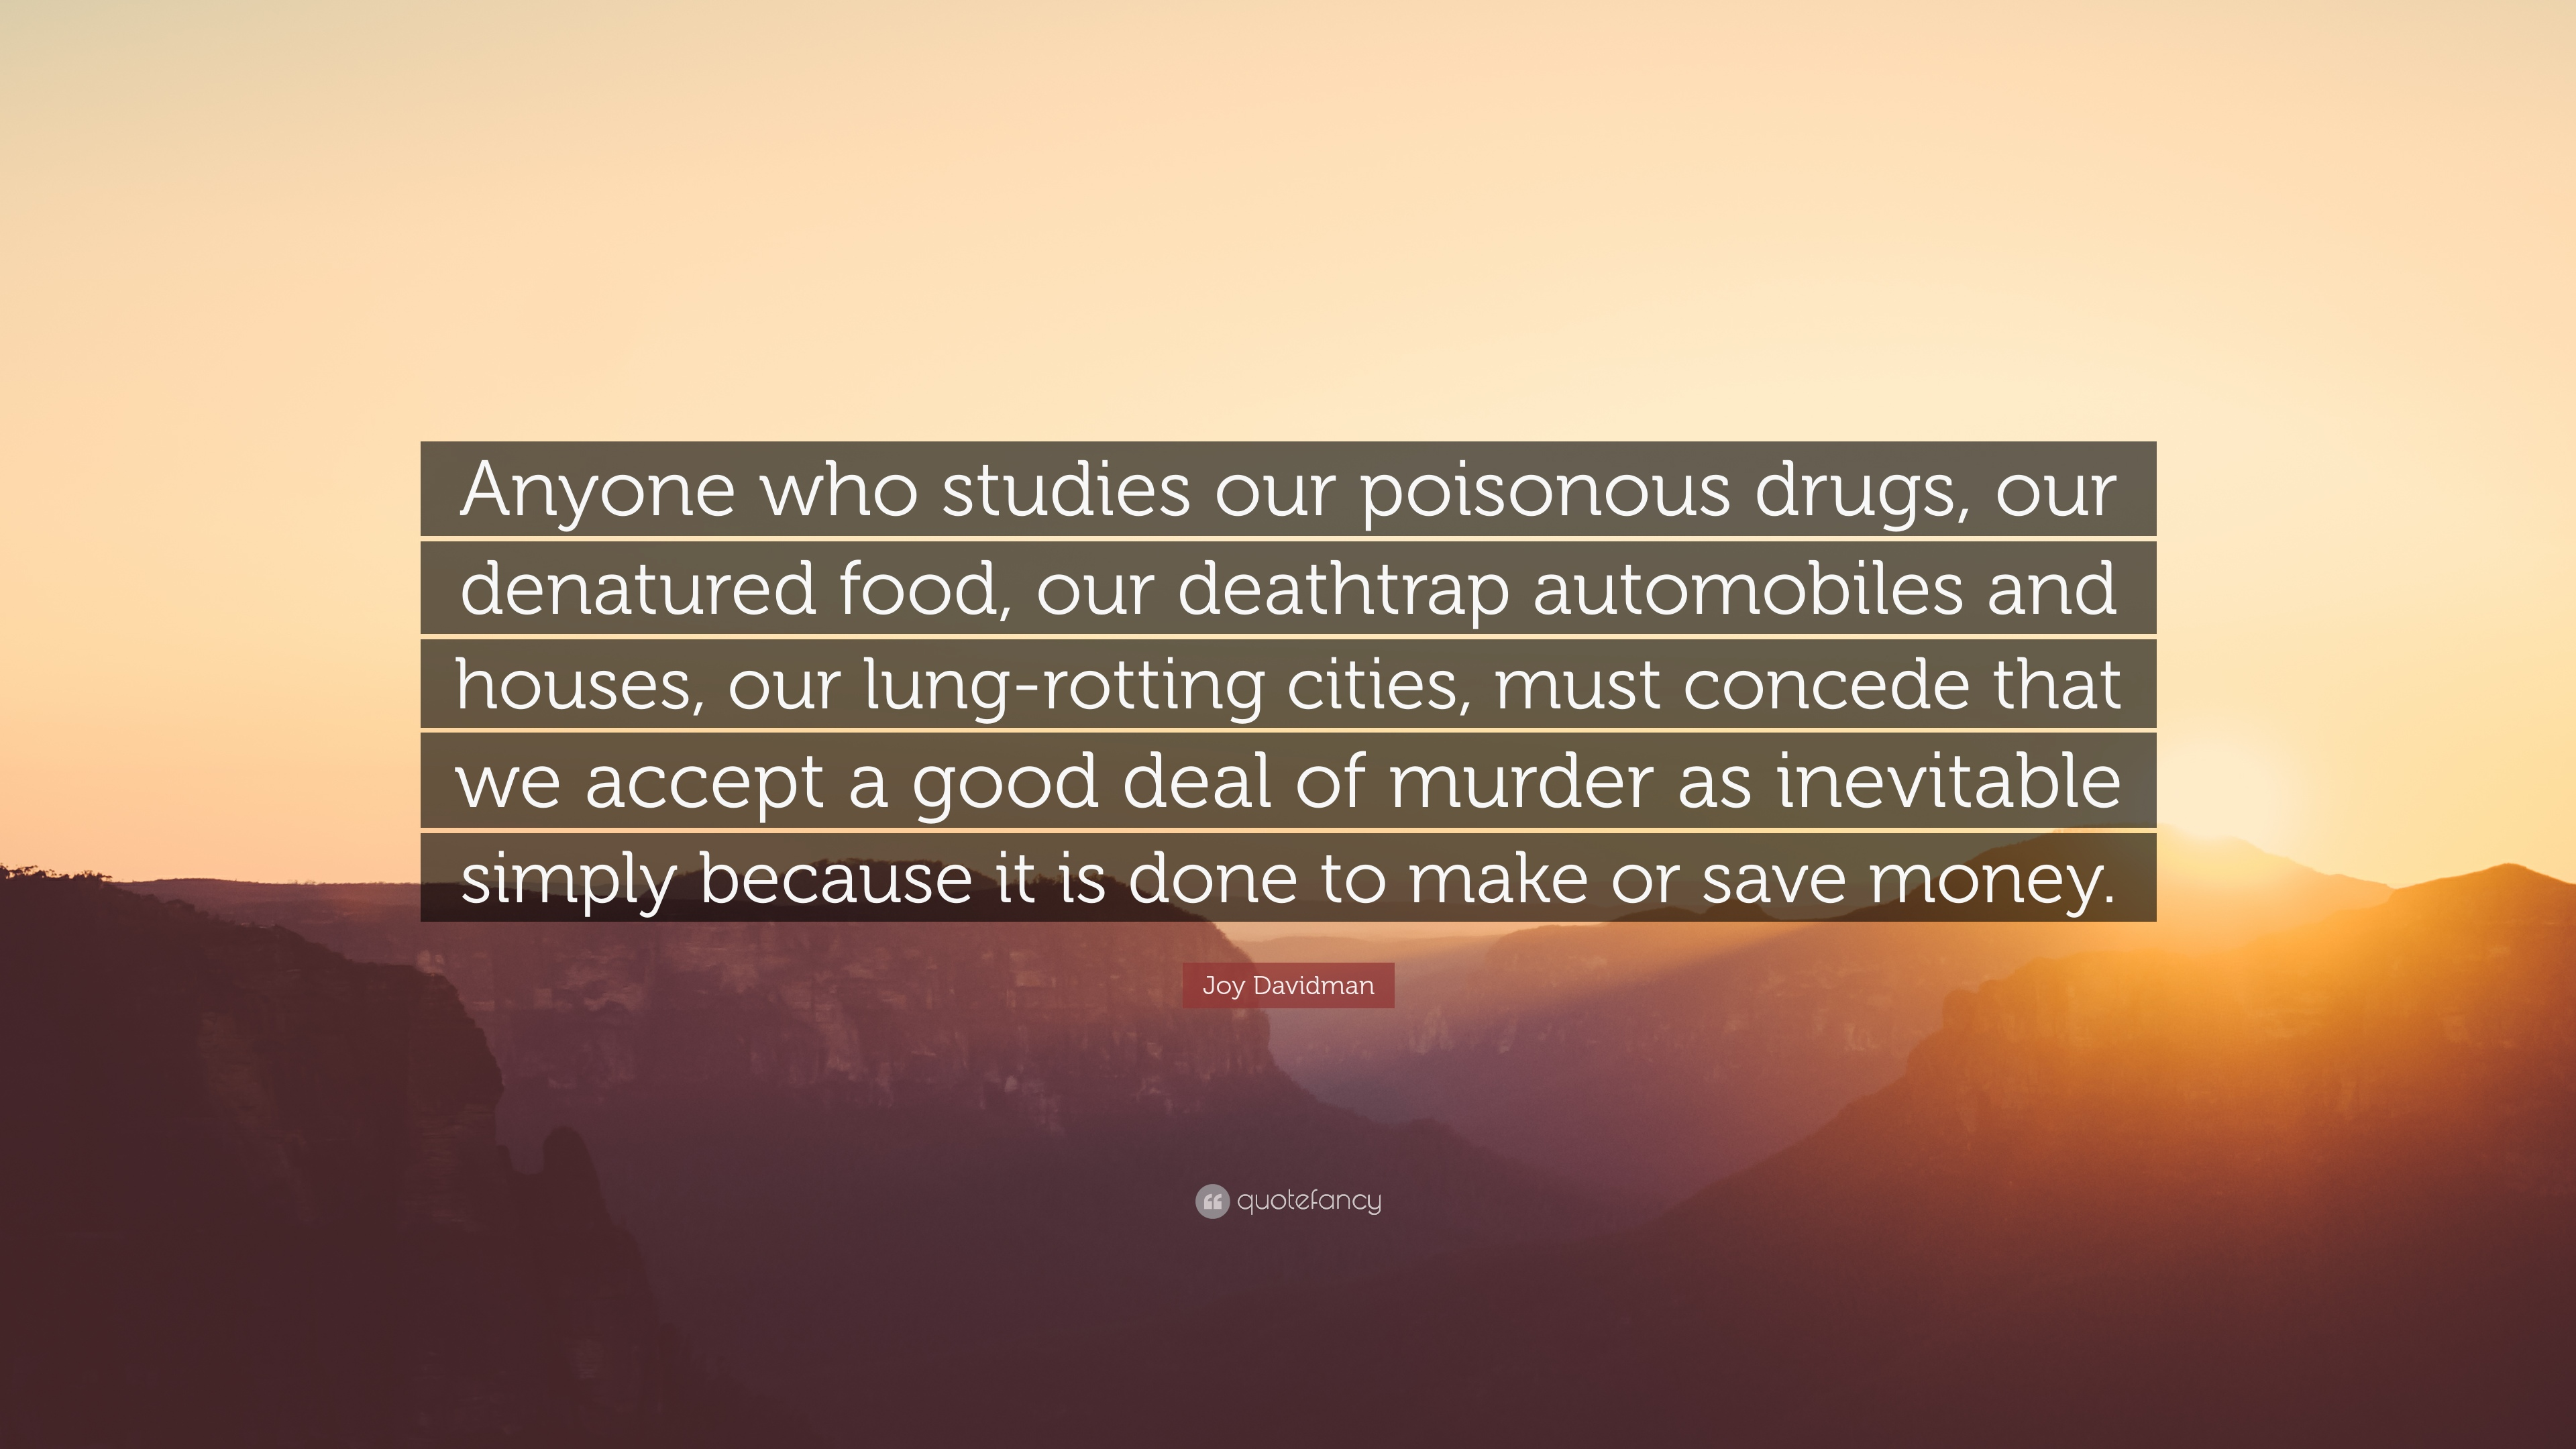 """""""Anyone who studies our poisonous drugs, our denatured food, our deathtrap automobiles and houses, our lung-rotting cities, must concede that we accept a good deal of murder as inevitable simply because it is done to make or save money.""""Get Inspired. Get Motivated."""